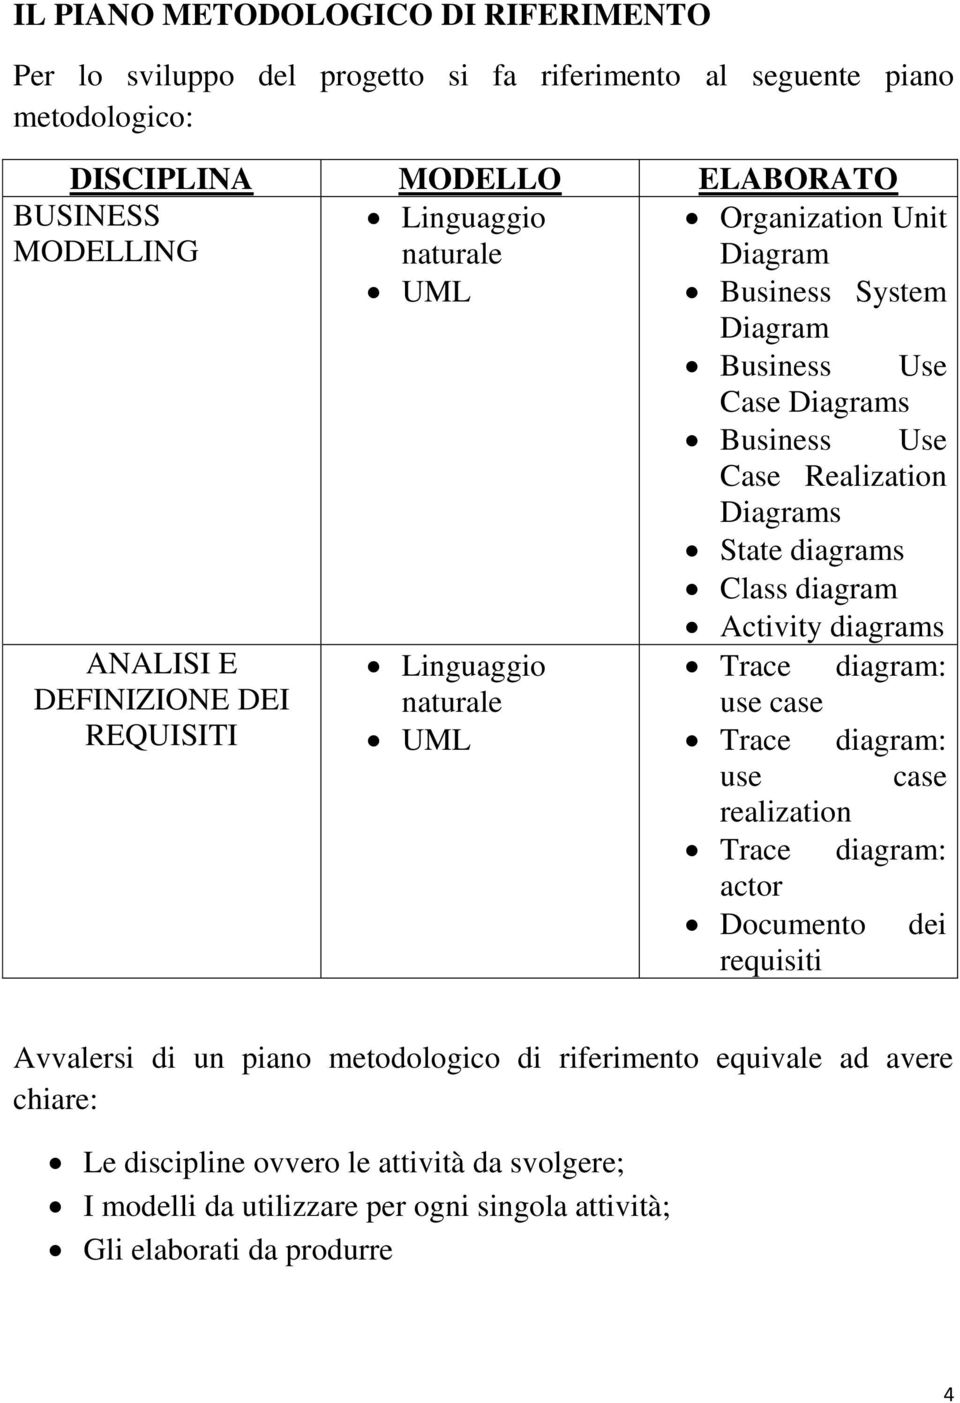 ANALISI E DEFINIZIONE DEI REQUISITI Linguaggio naturale UML Trace diagram: use case Trace diagram: use case realization Trace diagram: actor Documento dei requisiti Avvalersi di